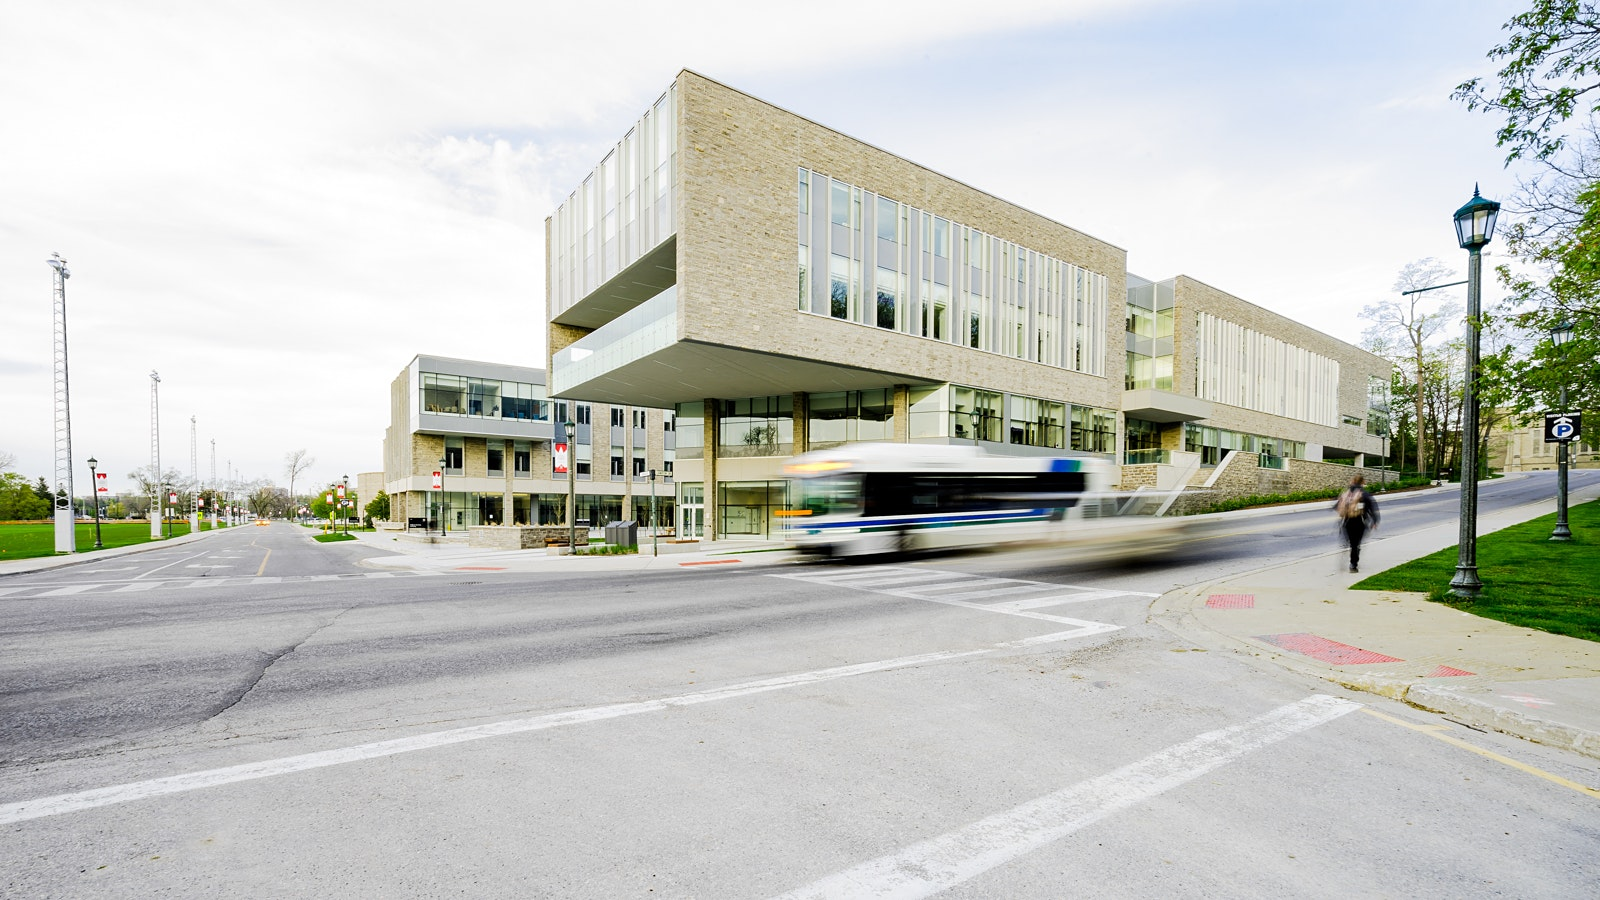 Exterior of Fims & nursing building as bus, car, and person go by in London Ontario